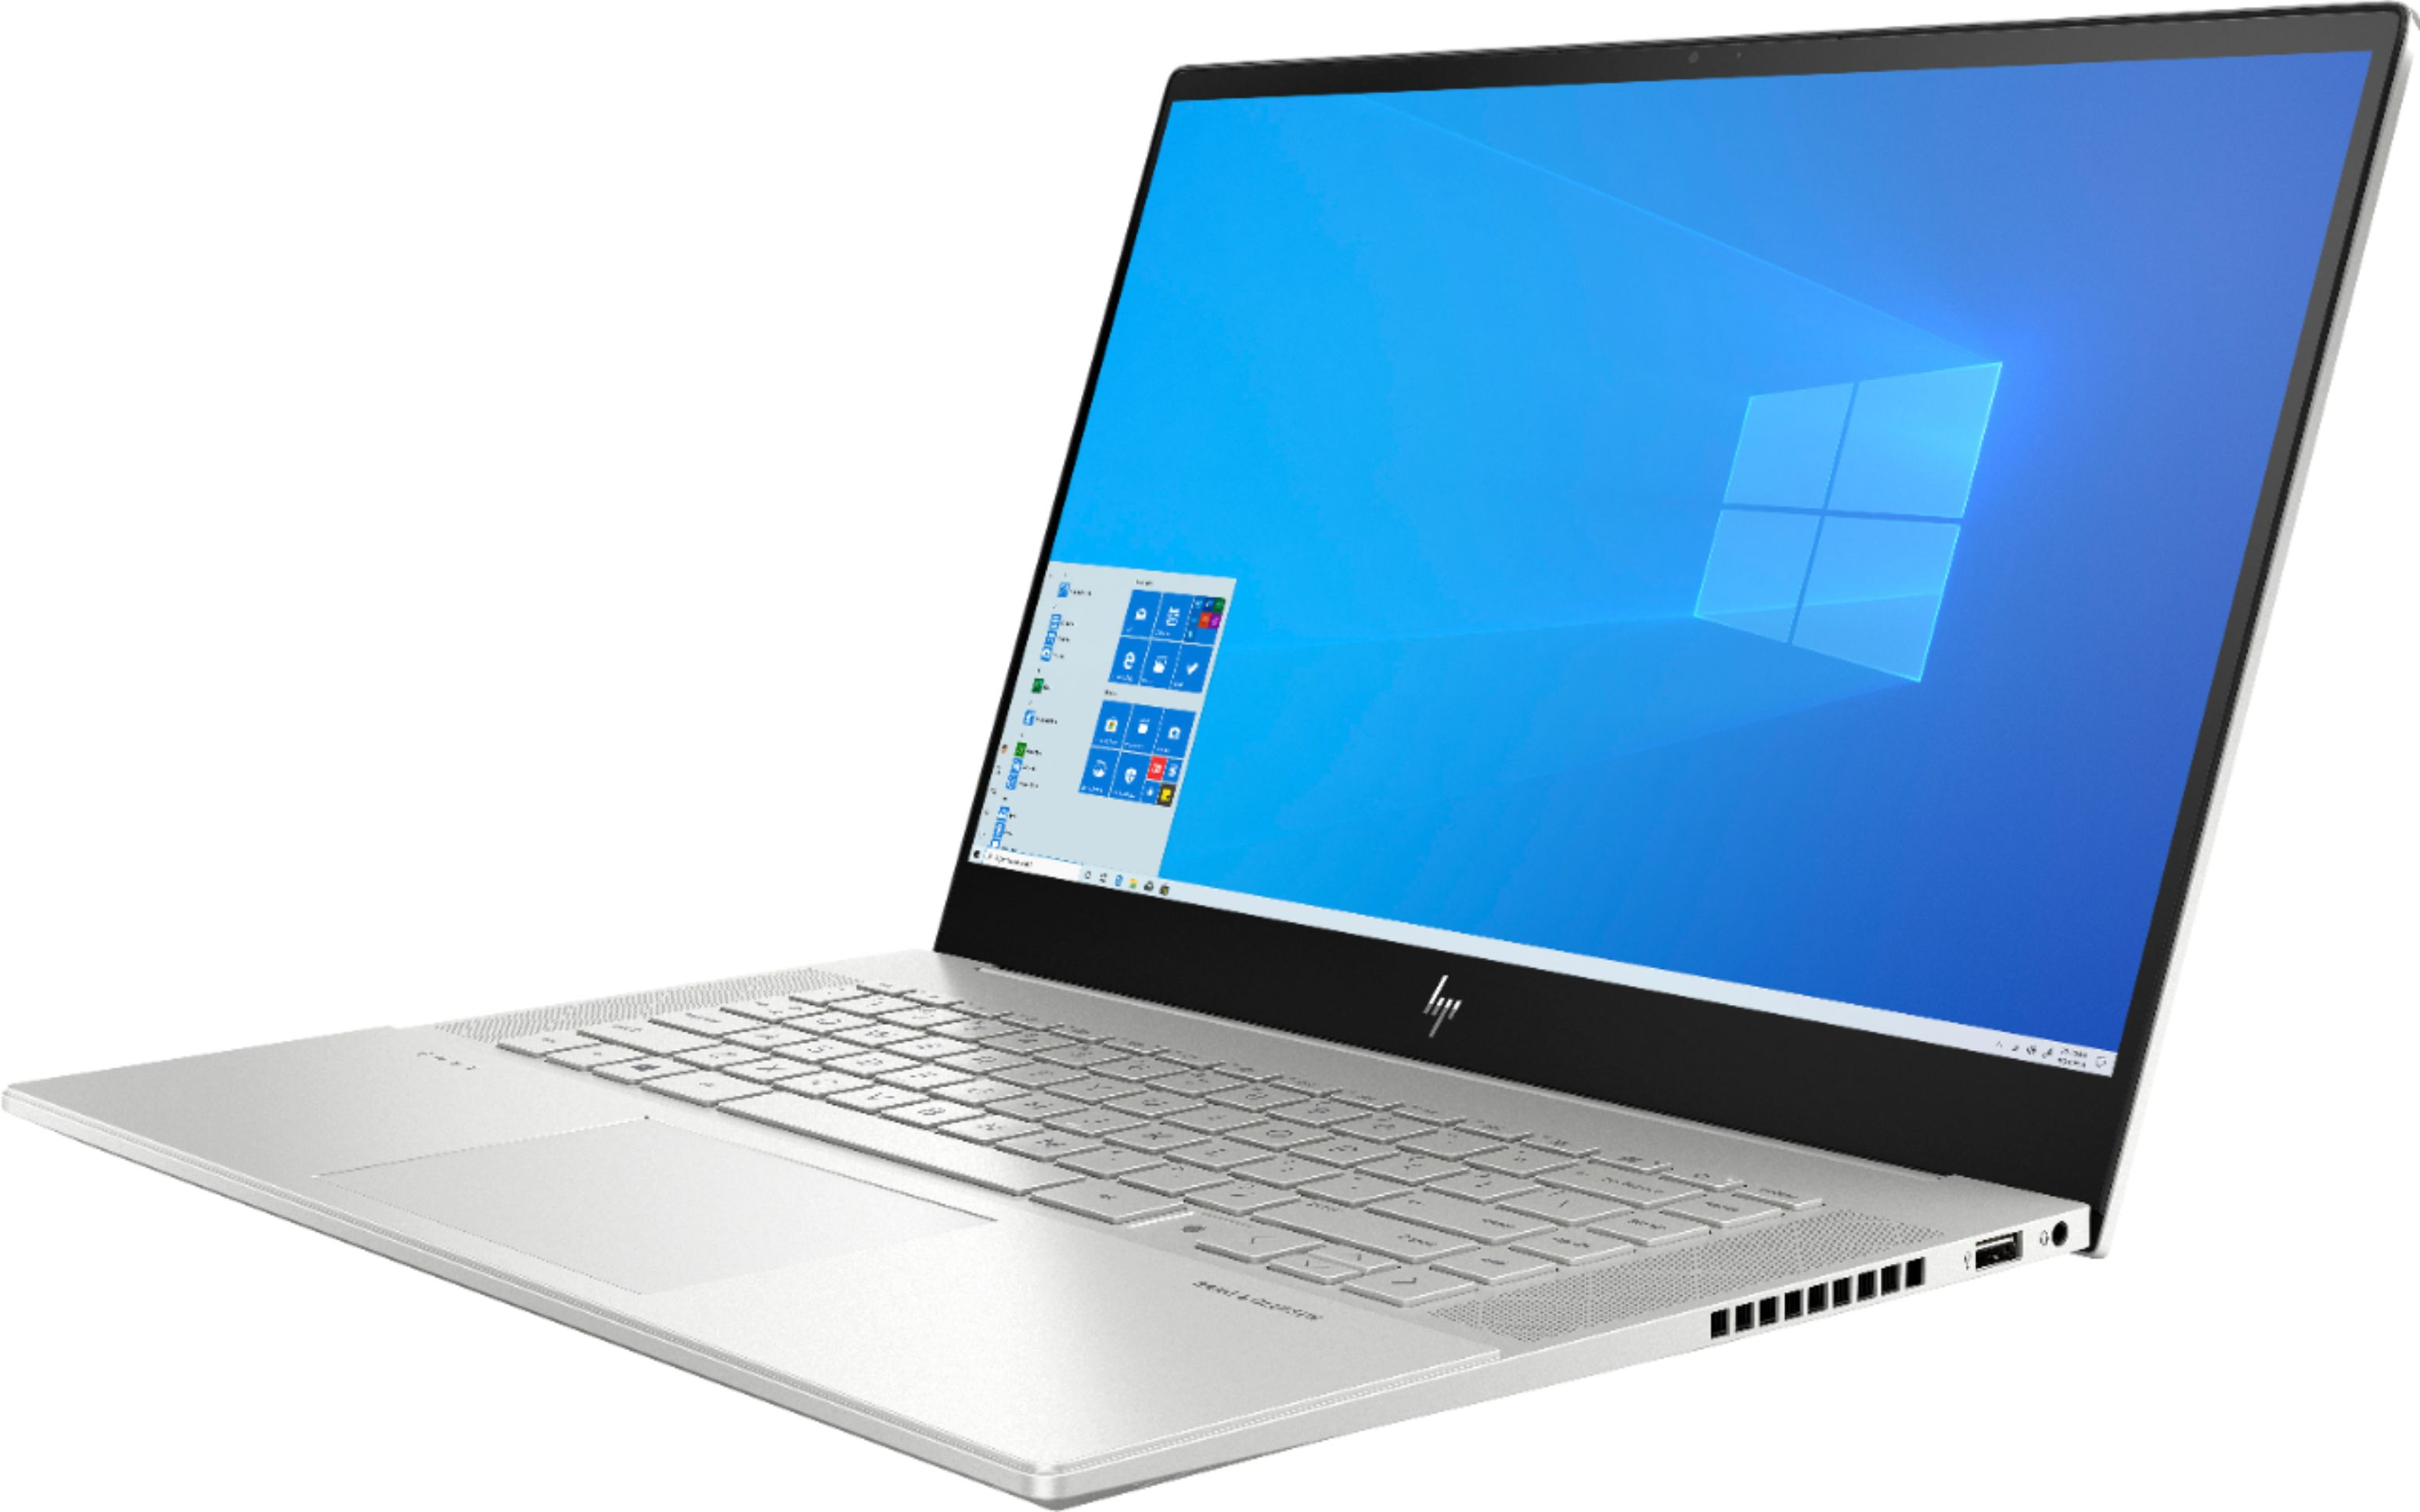 """Left Zoom. HP - ENVY 15.6"""" 4K UHD Touch-Screen Laptop -  Intel Core i7 - 16GB Memory - NVIDIA GeForce RTX 2060 - 512GB SSD + 32GB Optane - Natural Silver."""